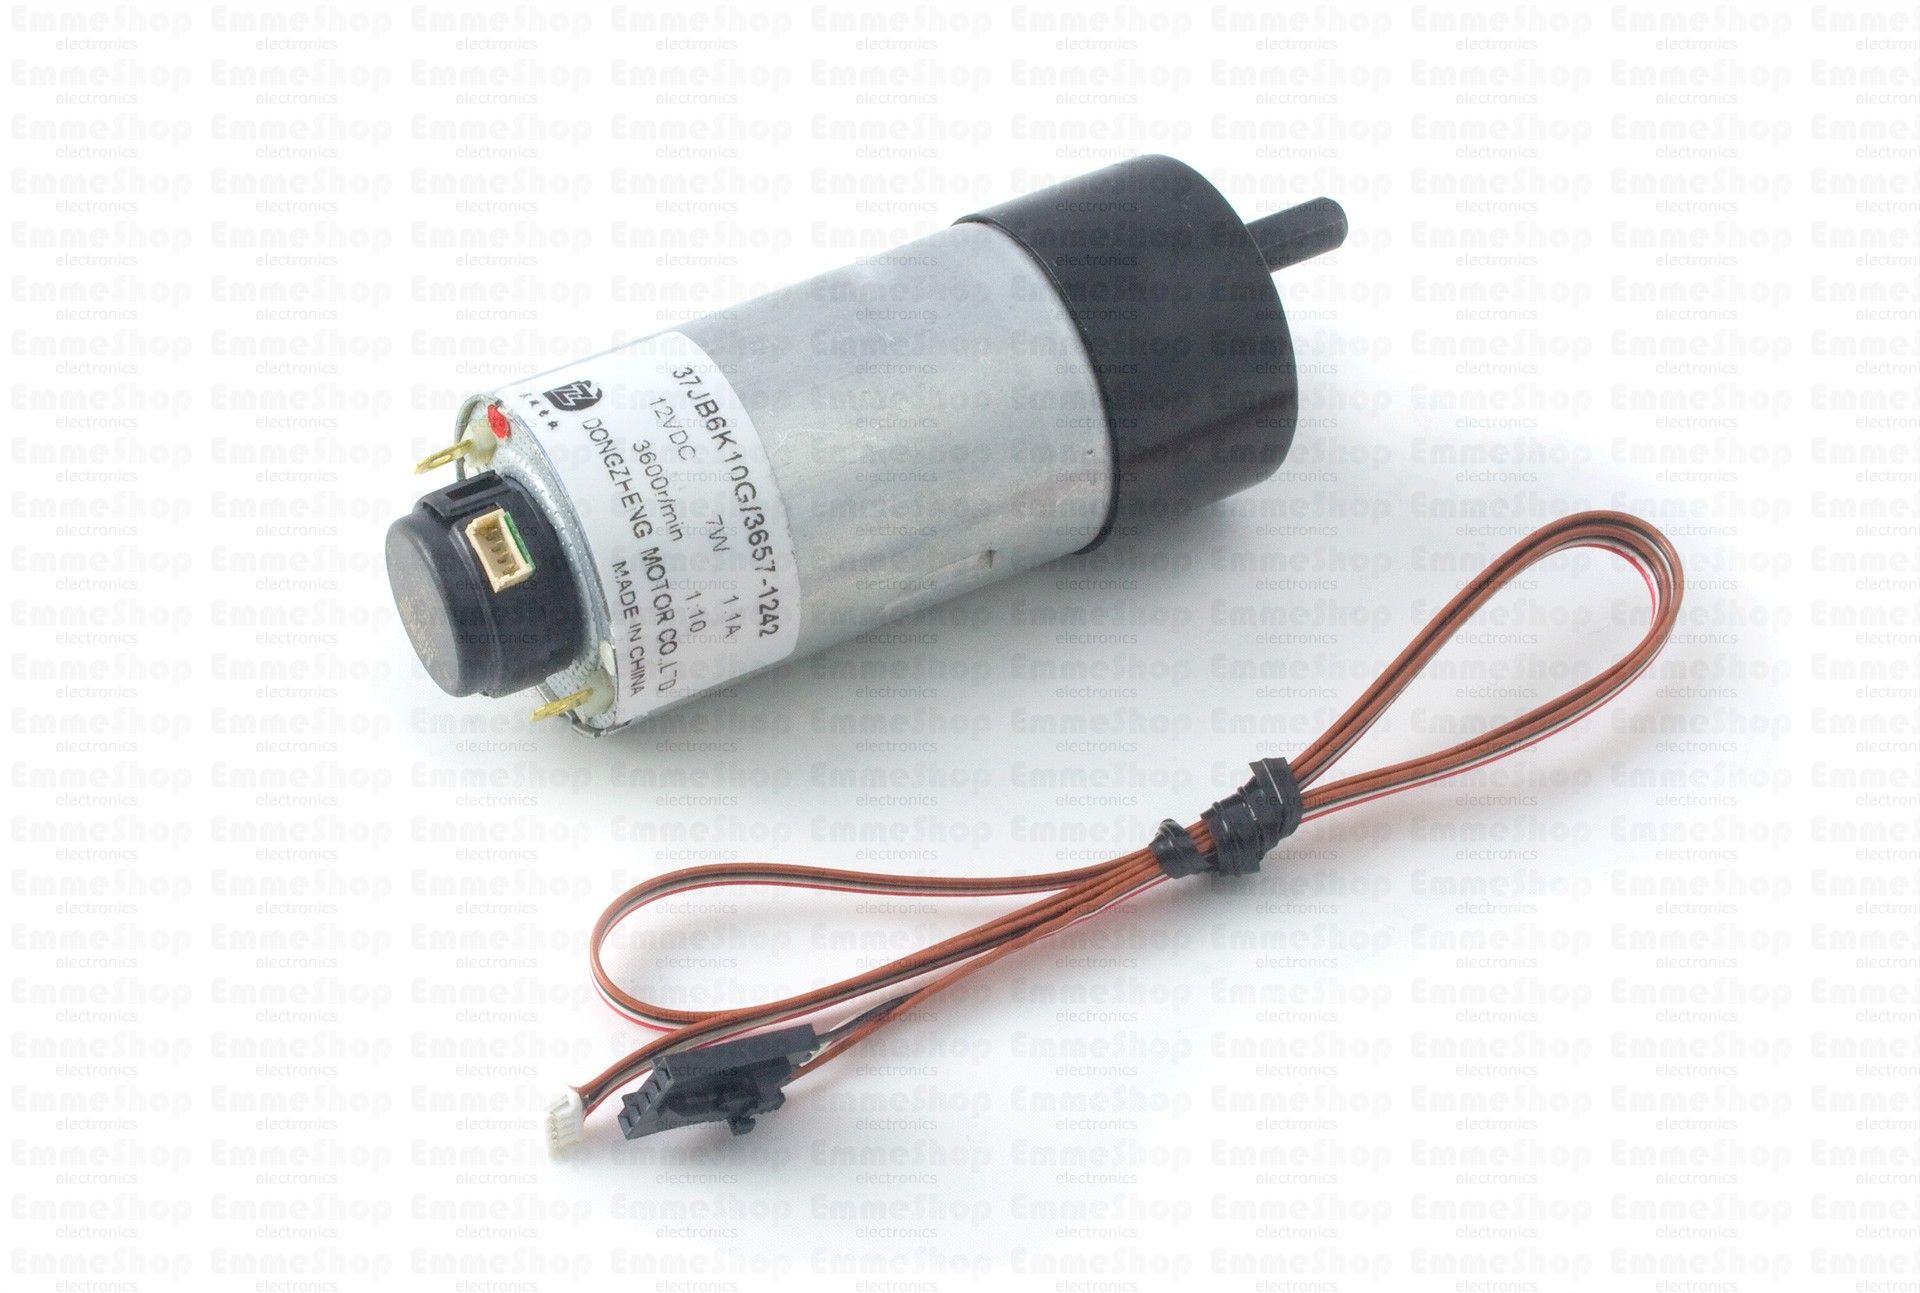 3258E_0 - 12V/1.5Kg-cm/365RPM 10:1 DC Gear Motor w/ Encoder This DC motor has an encoder, a 10:1 gearbox, a rated speed of 365 RPM and rated torque of 1.53 Kg·cm.